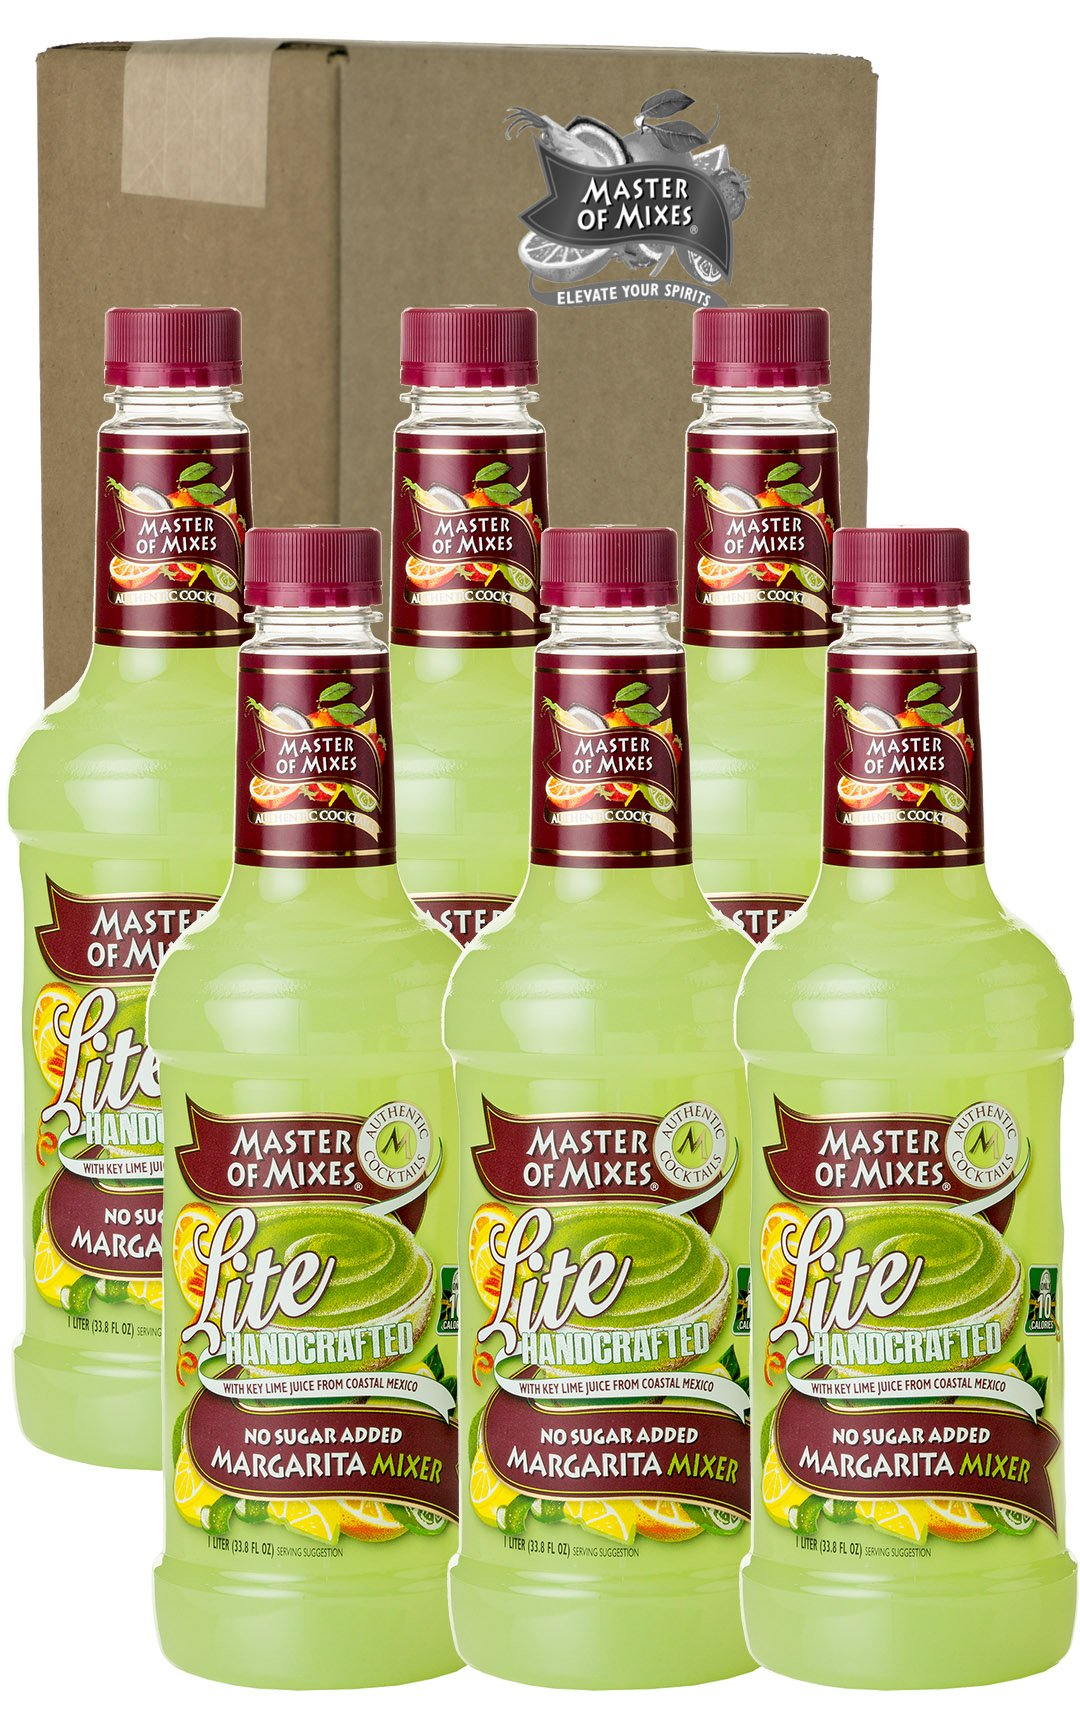 Master of Mixes Margarita Lite Drink Mix, Ready To Use, 1 Liter Bottle (33.8 Fl Oz), Pack of 6 by Master of Mixes